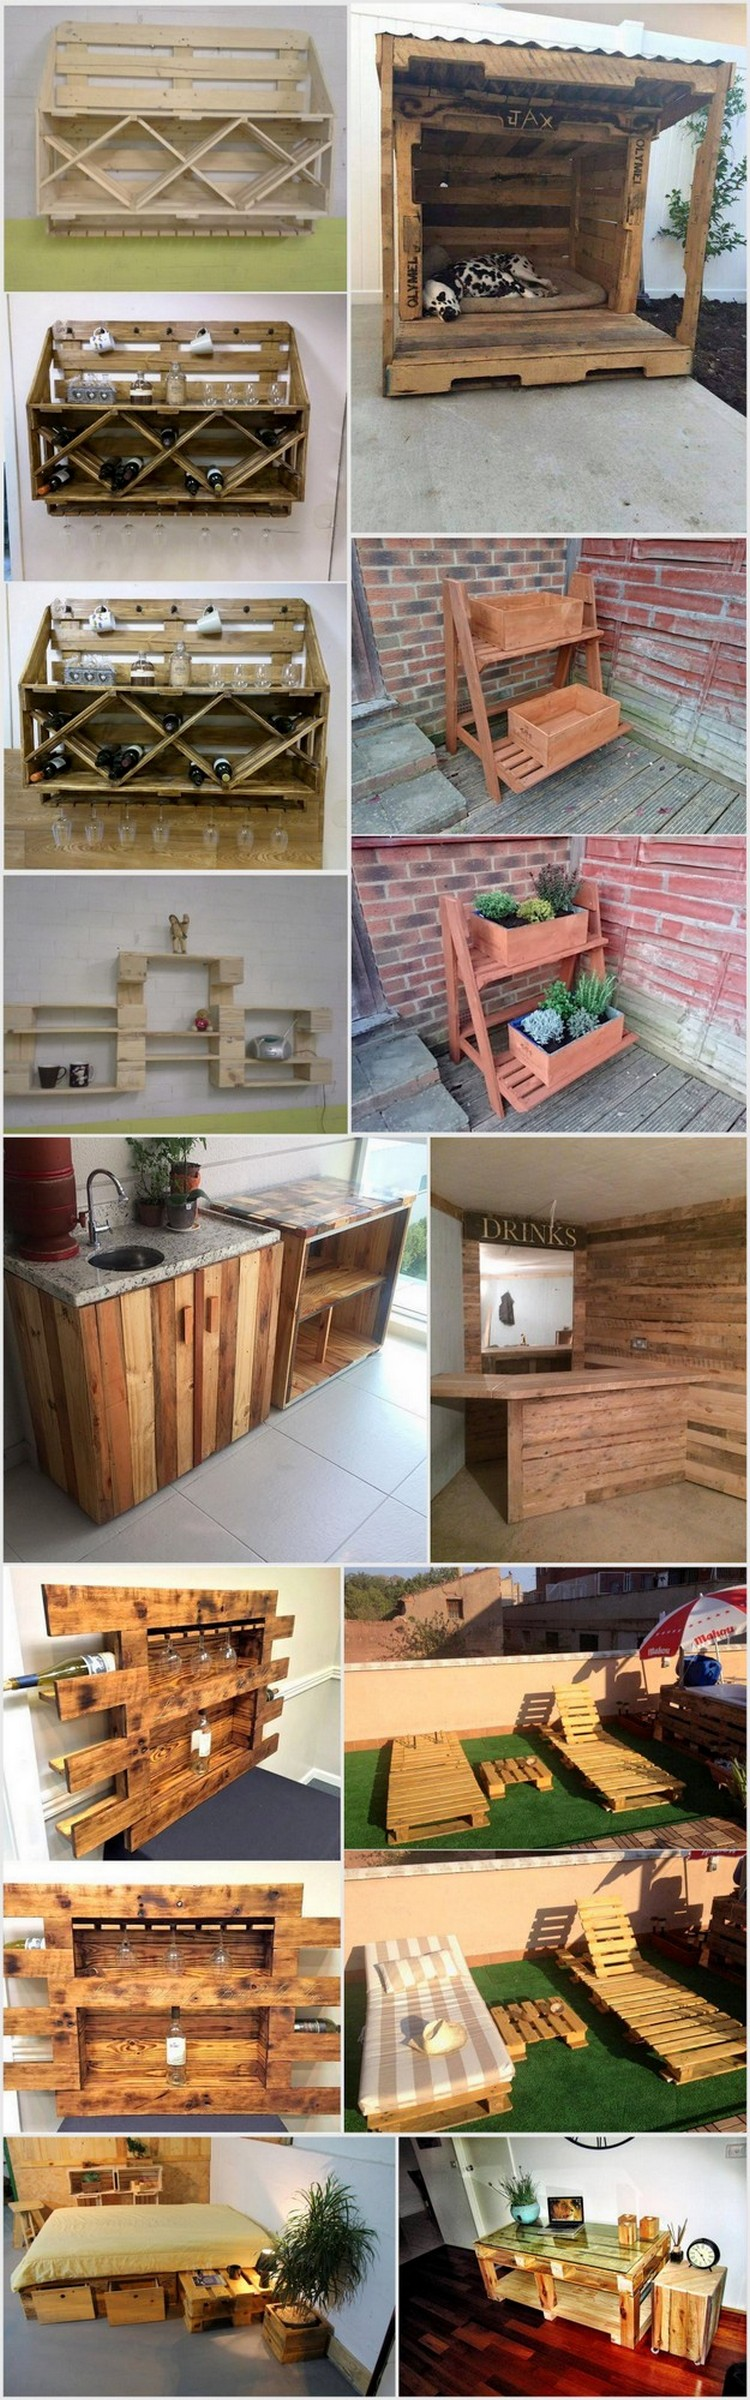 These Wooden Pallet Projects will Inspire You and Your Guests